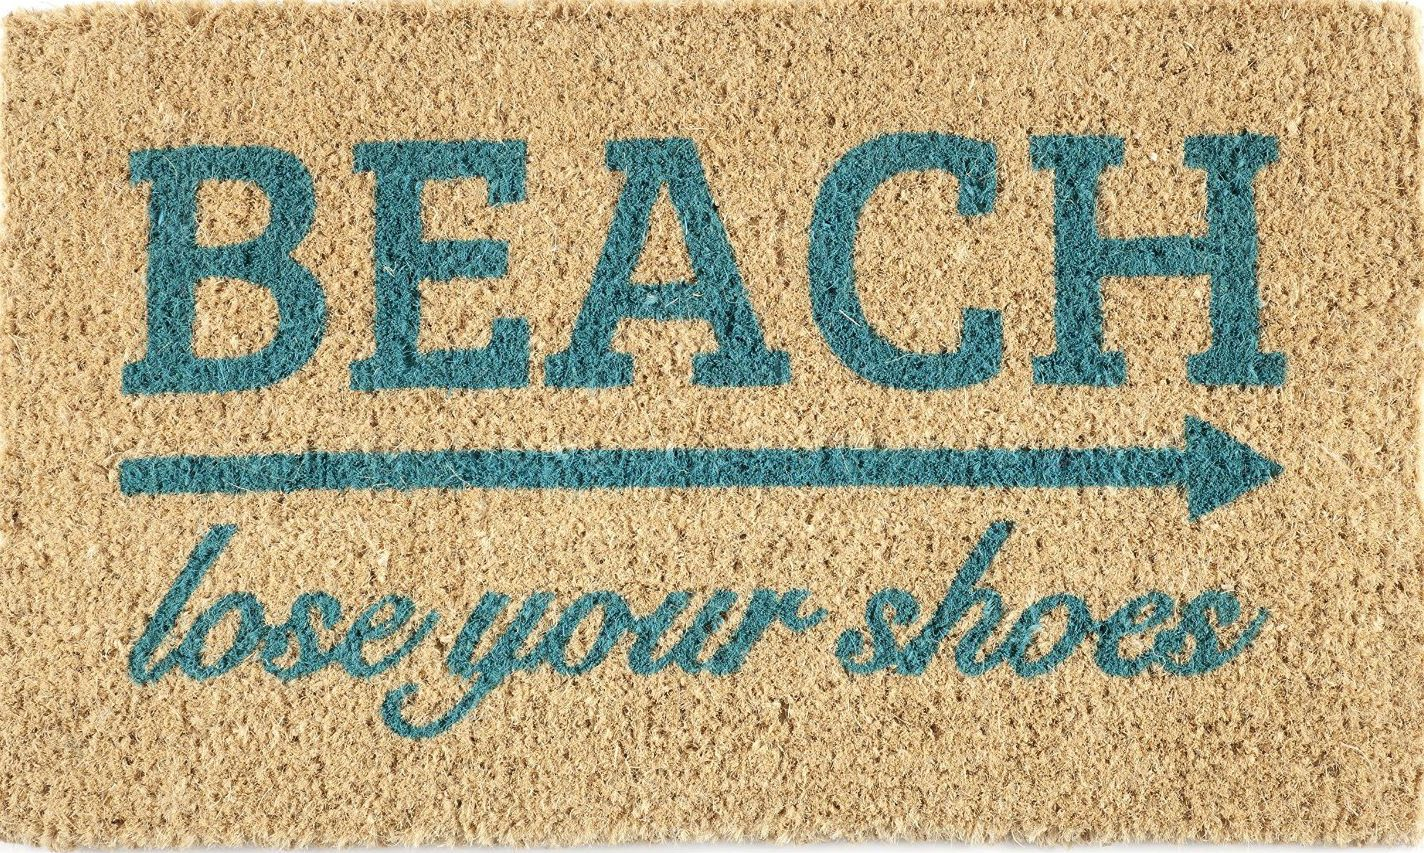 BEACH DOORMATS At BEACHFRONT DECOR! Check Out Our Complete Guide To Beach  And Coastal Themed Doormats For Your Beach Home.